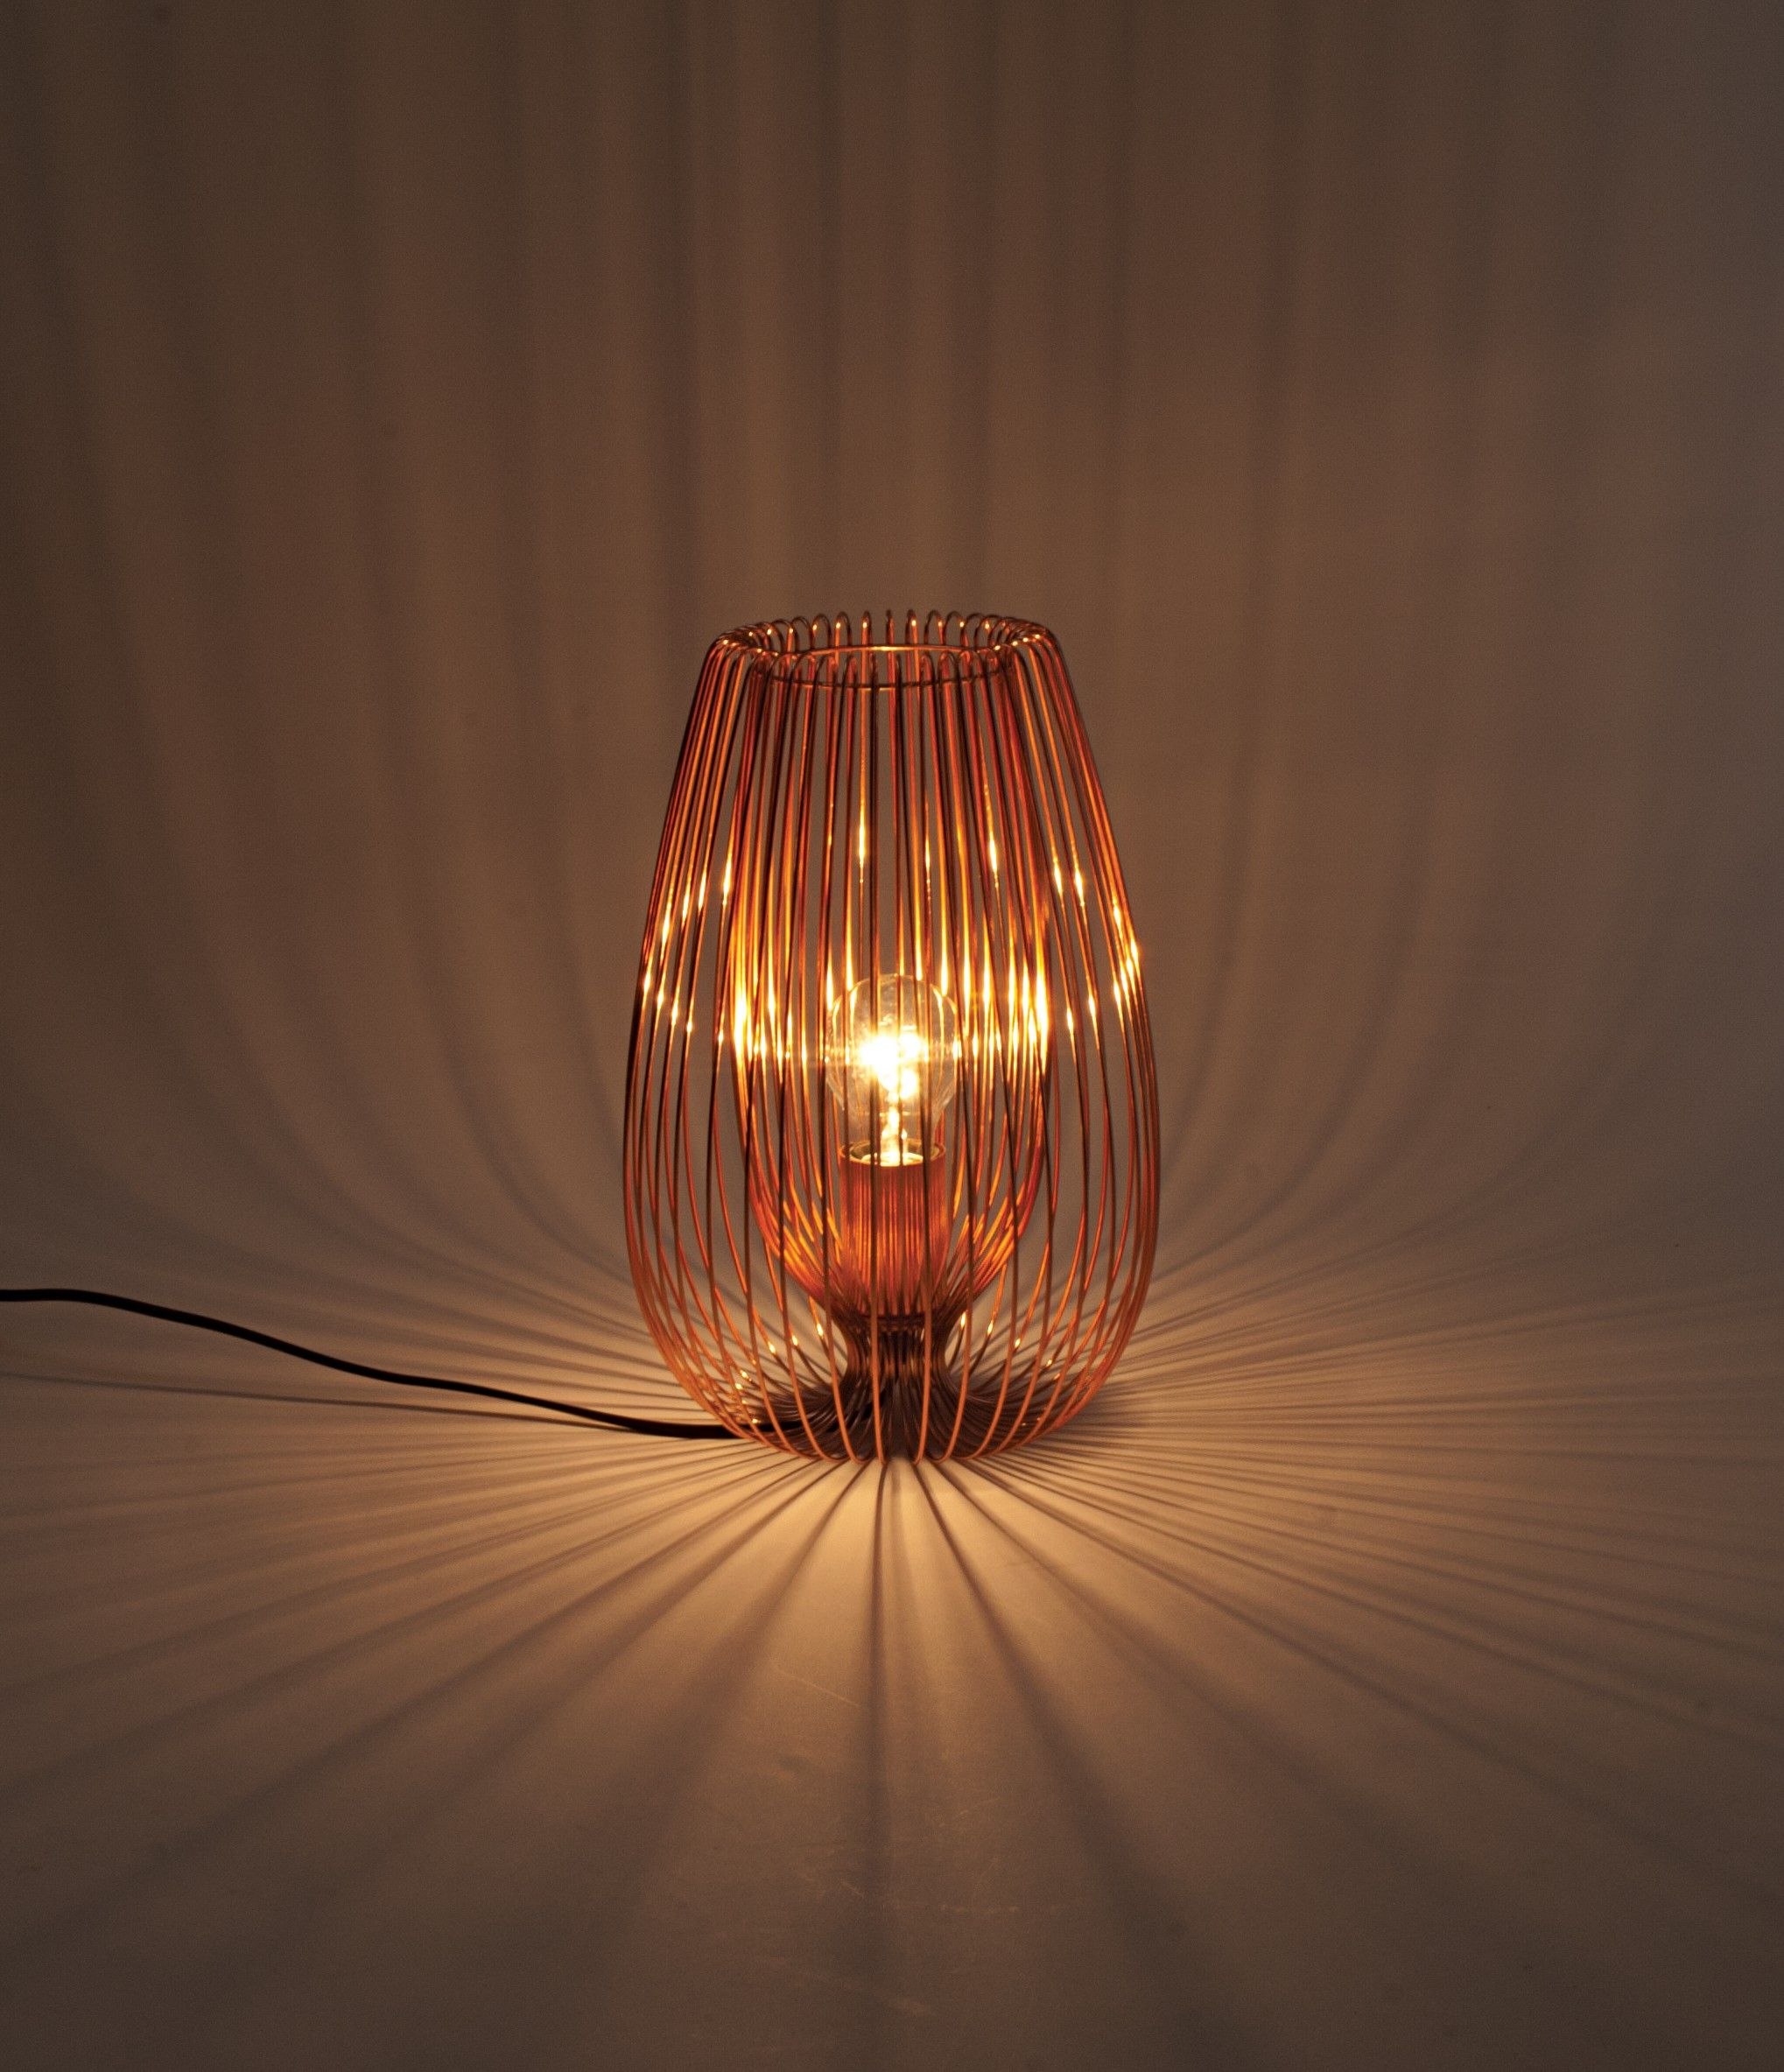 copper wire 60w e27 table lamp copper wire e27 light bulb and rh pinterest co uk how to wire up a bedside lamp how to wire a bedside lamp switch